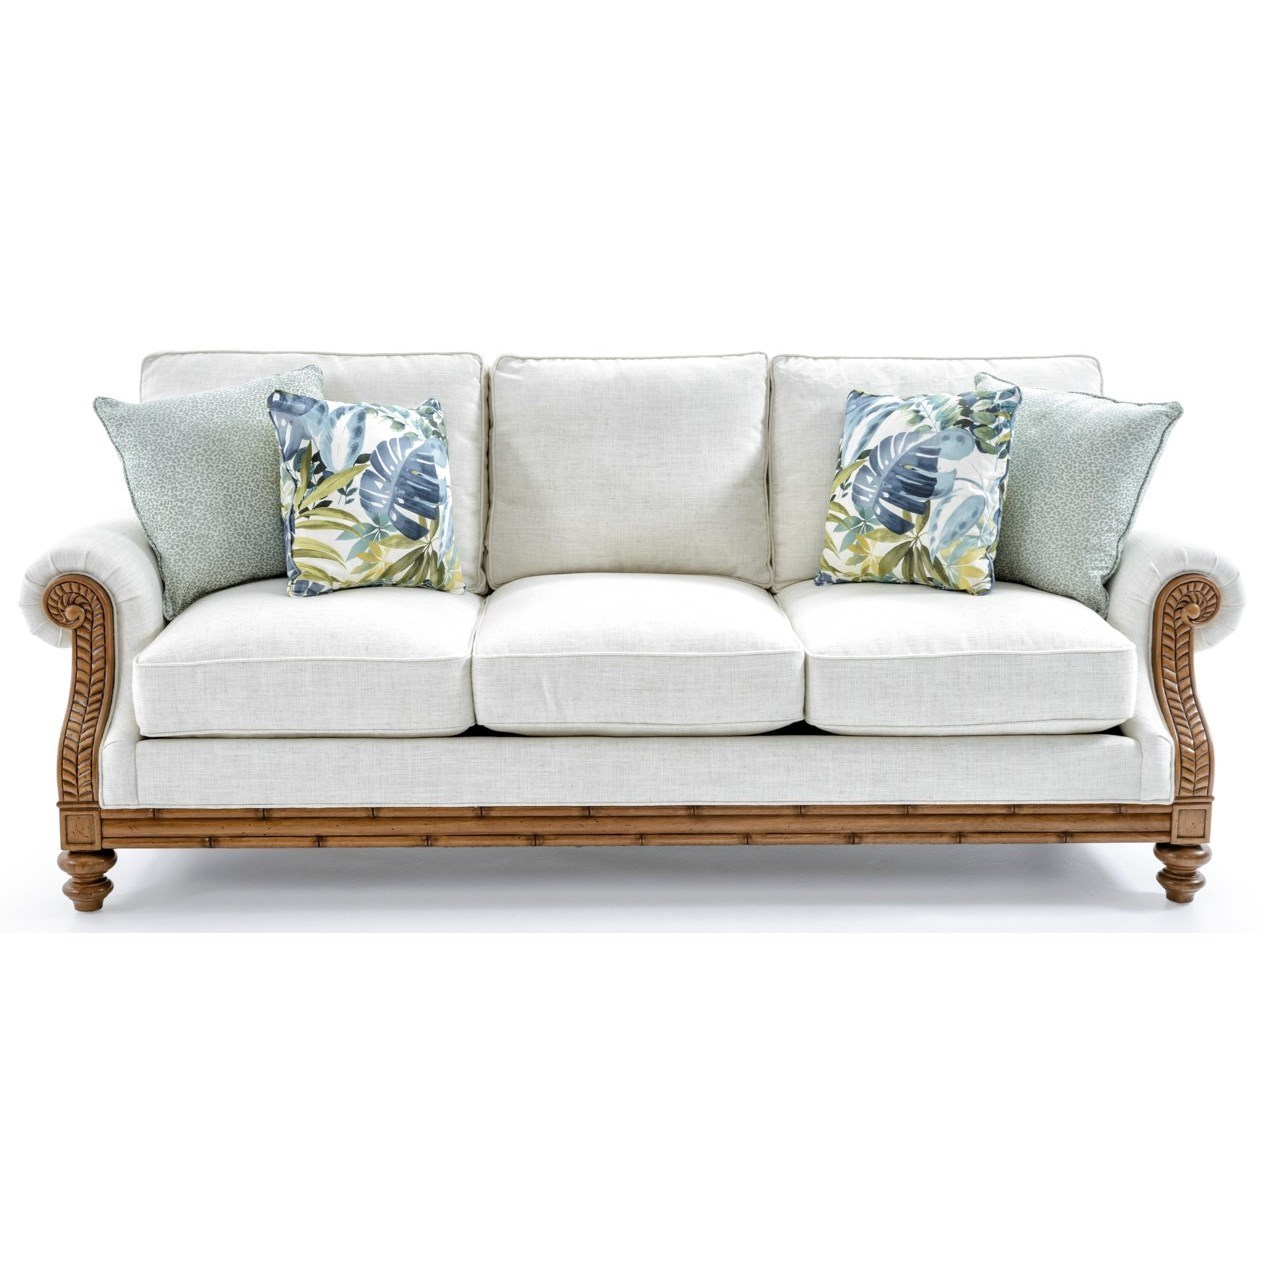 Tommy Bahama Home Tommy Bahama Upholstery Quick Ship West Shore Sofa With  Exposed Wood Accents   Baeru0027s Furniture   Sofas